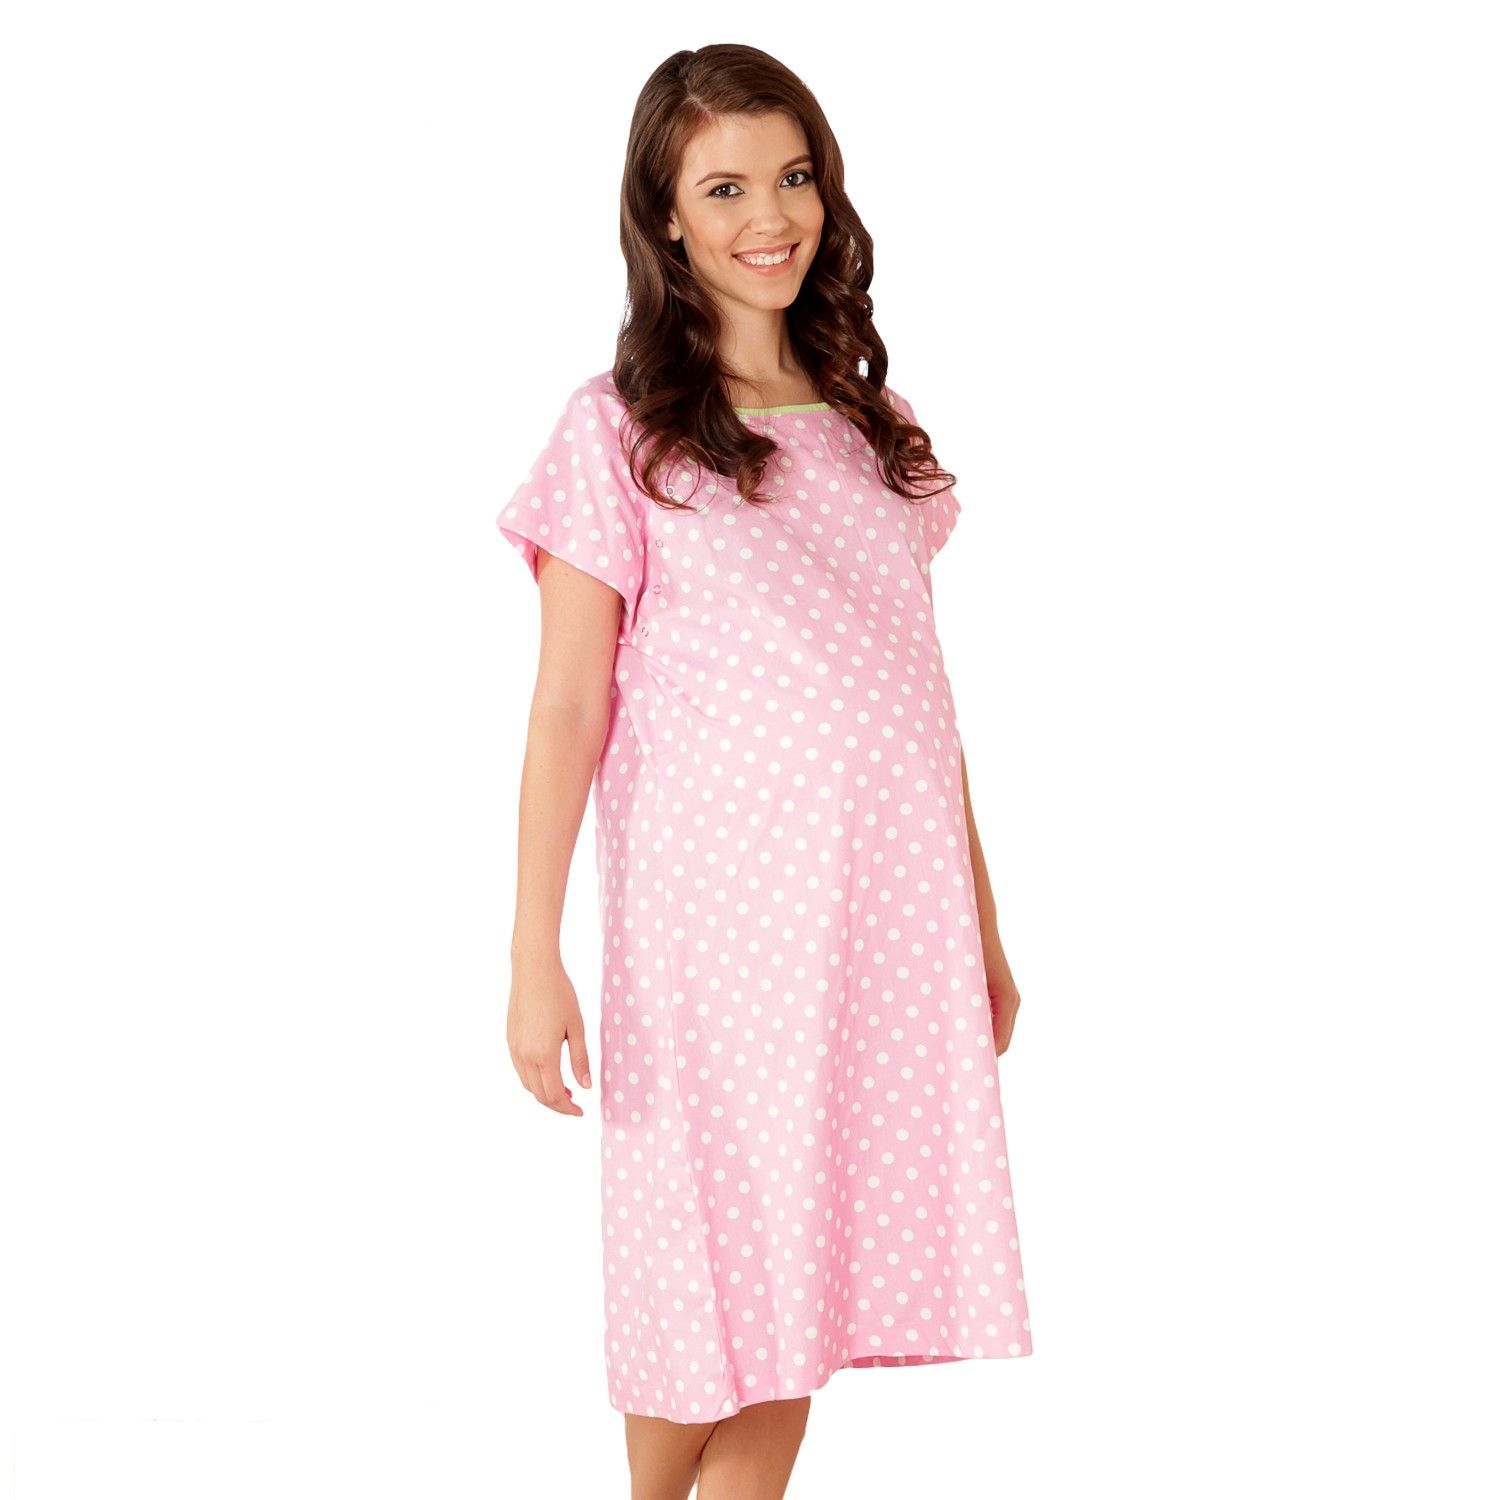 Maternity Delivery Gowns | www.topsimages.com